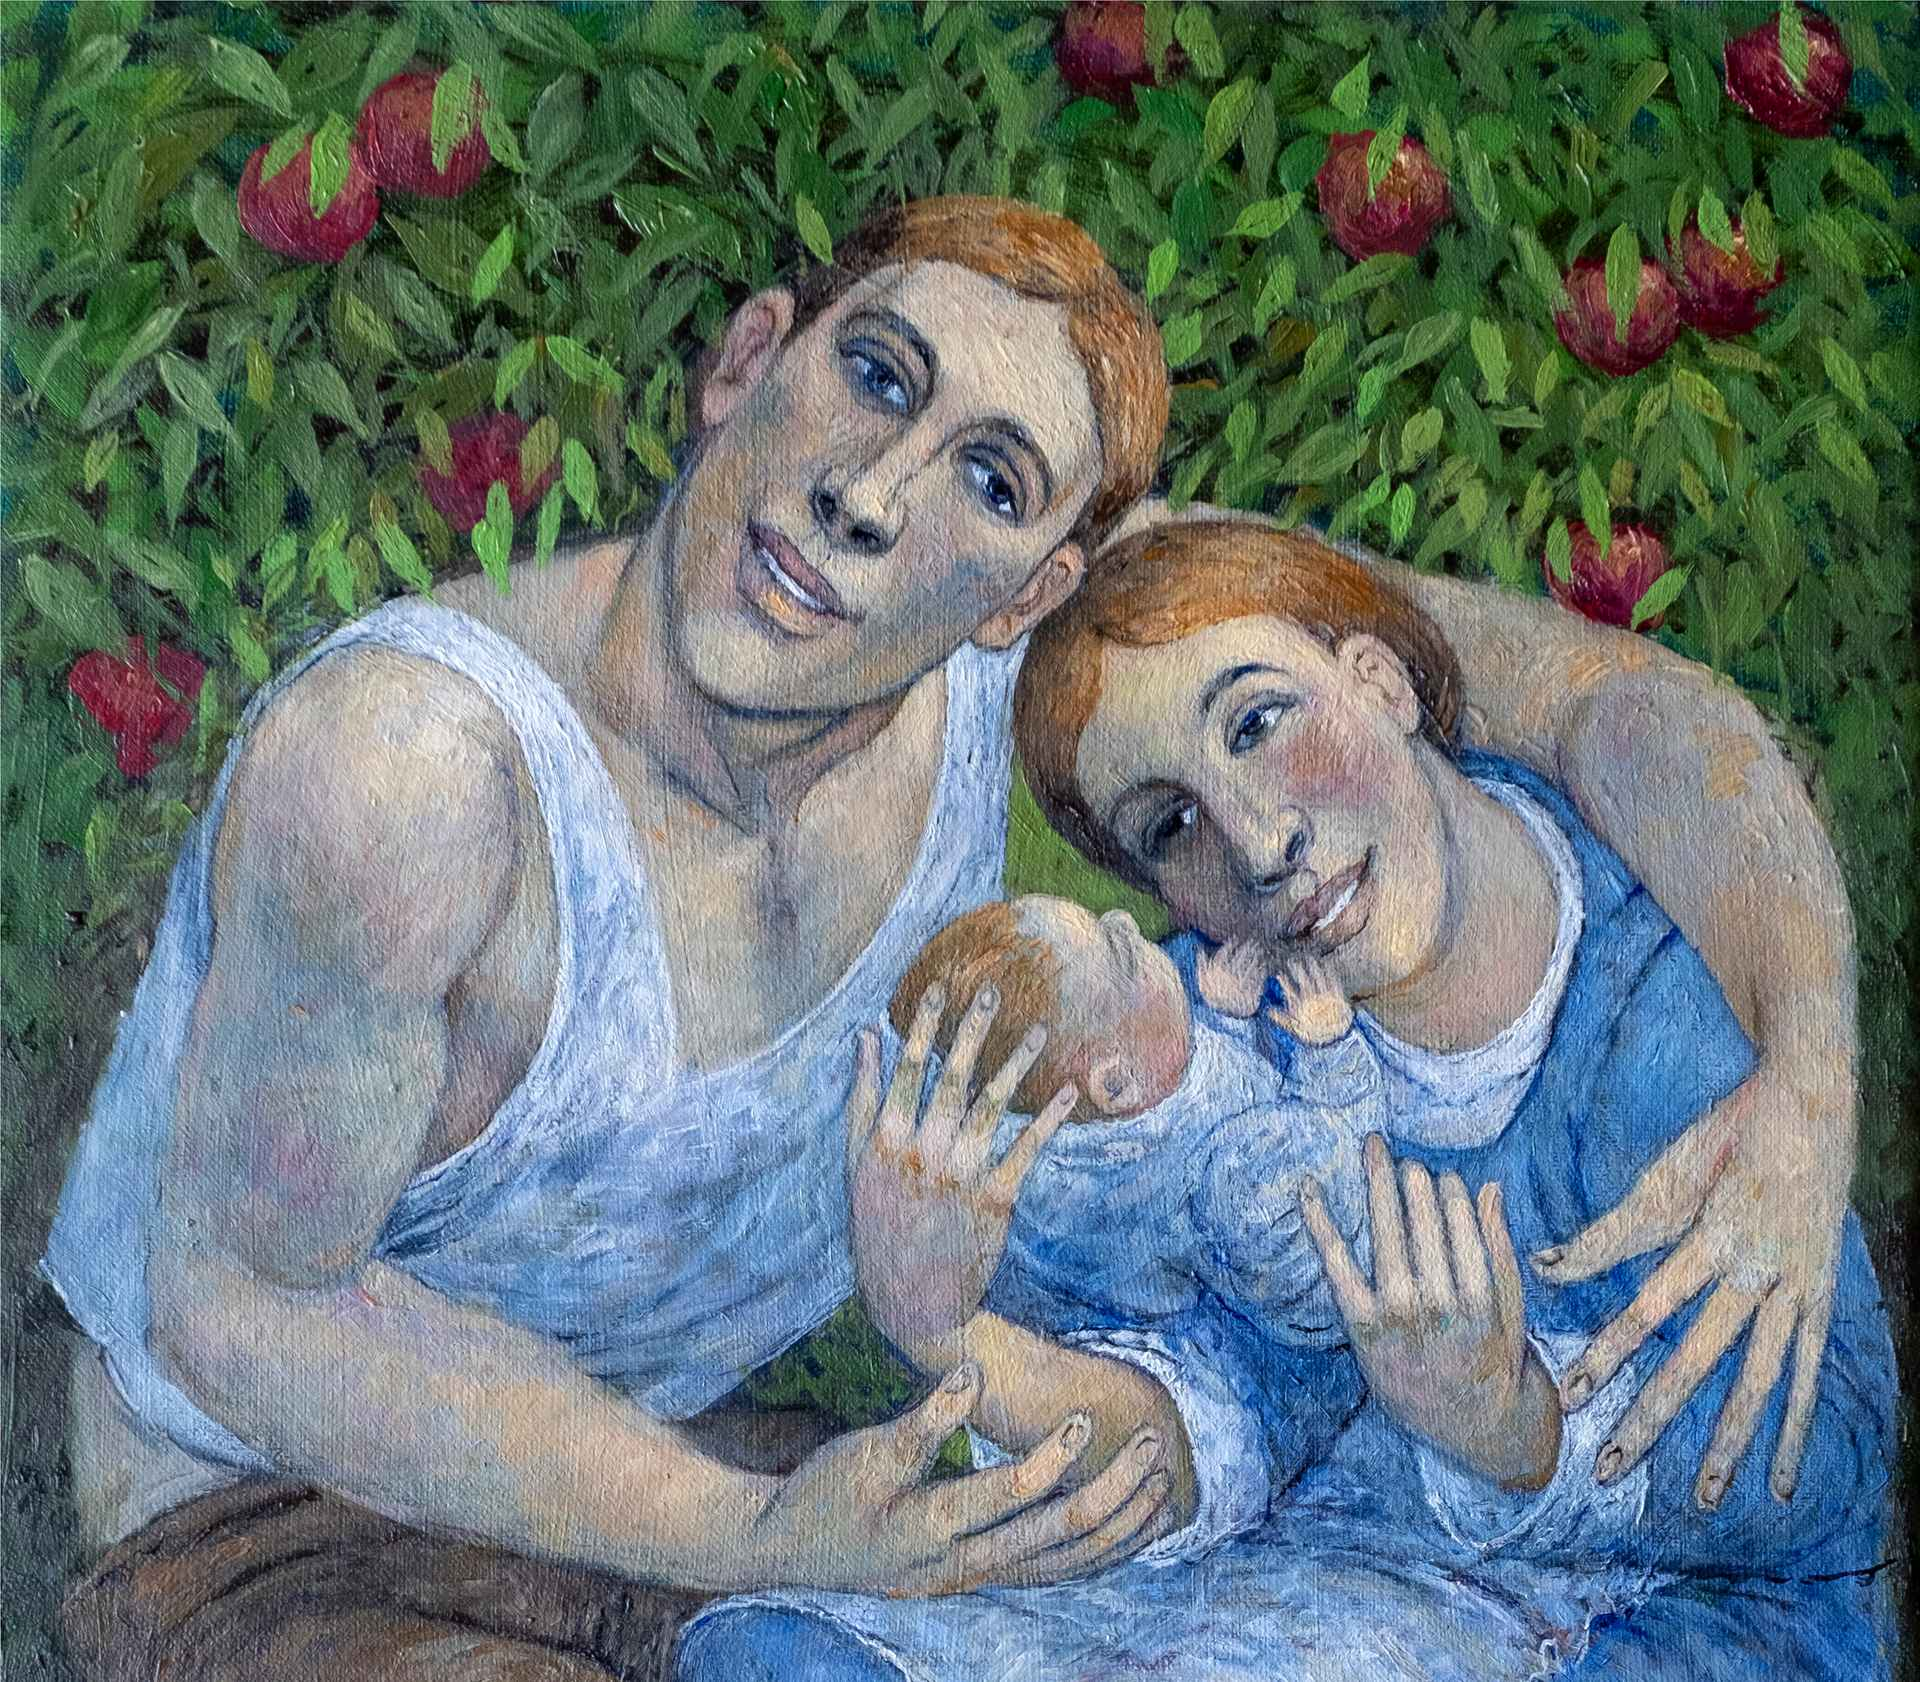 Banner 1 by Richard Wallace